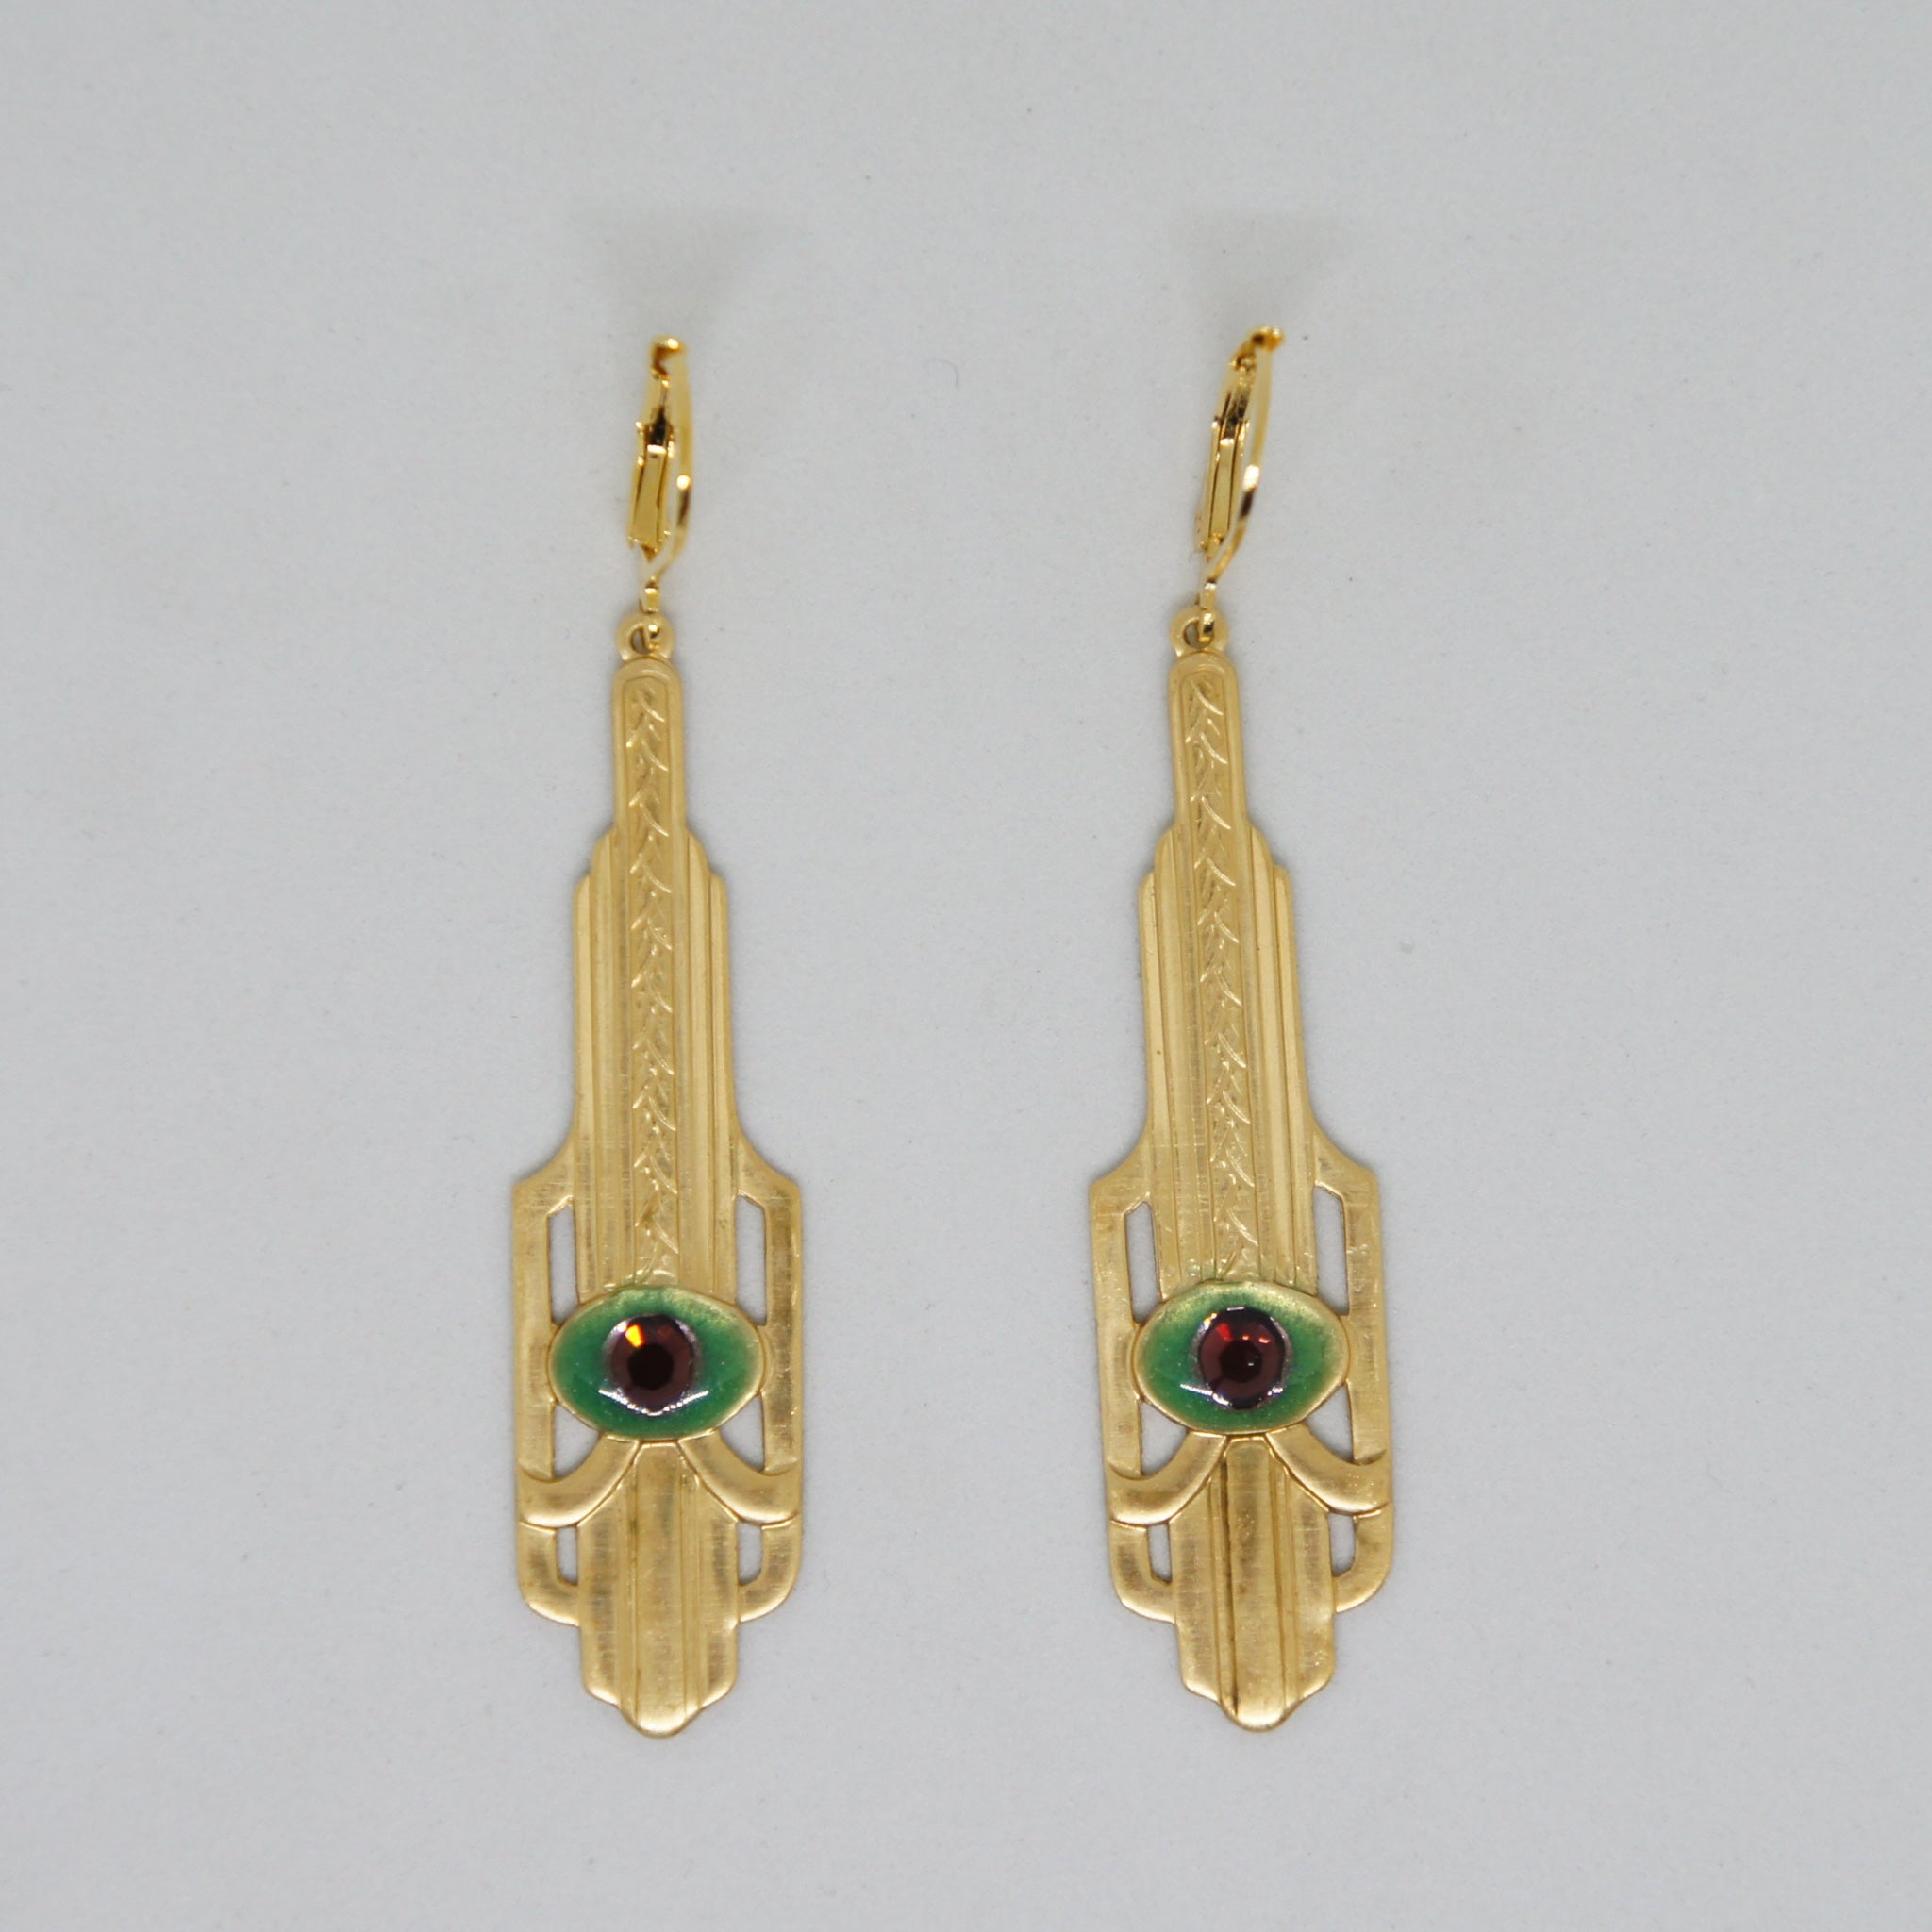 Era Futuris Geometric Art Deco Earrings